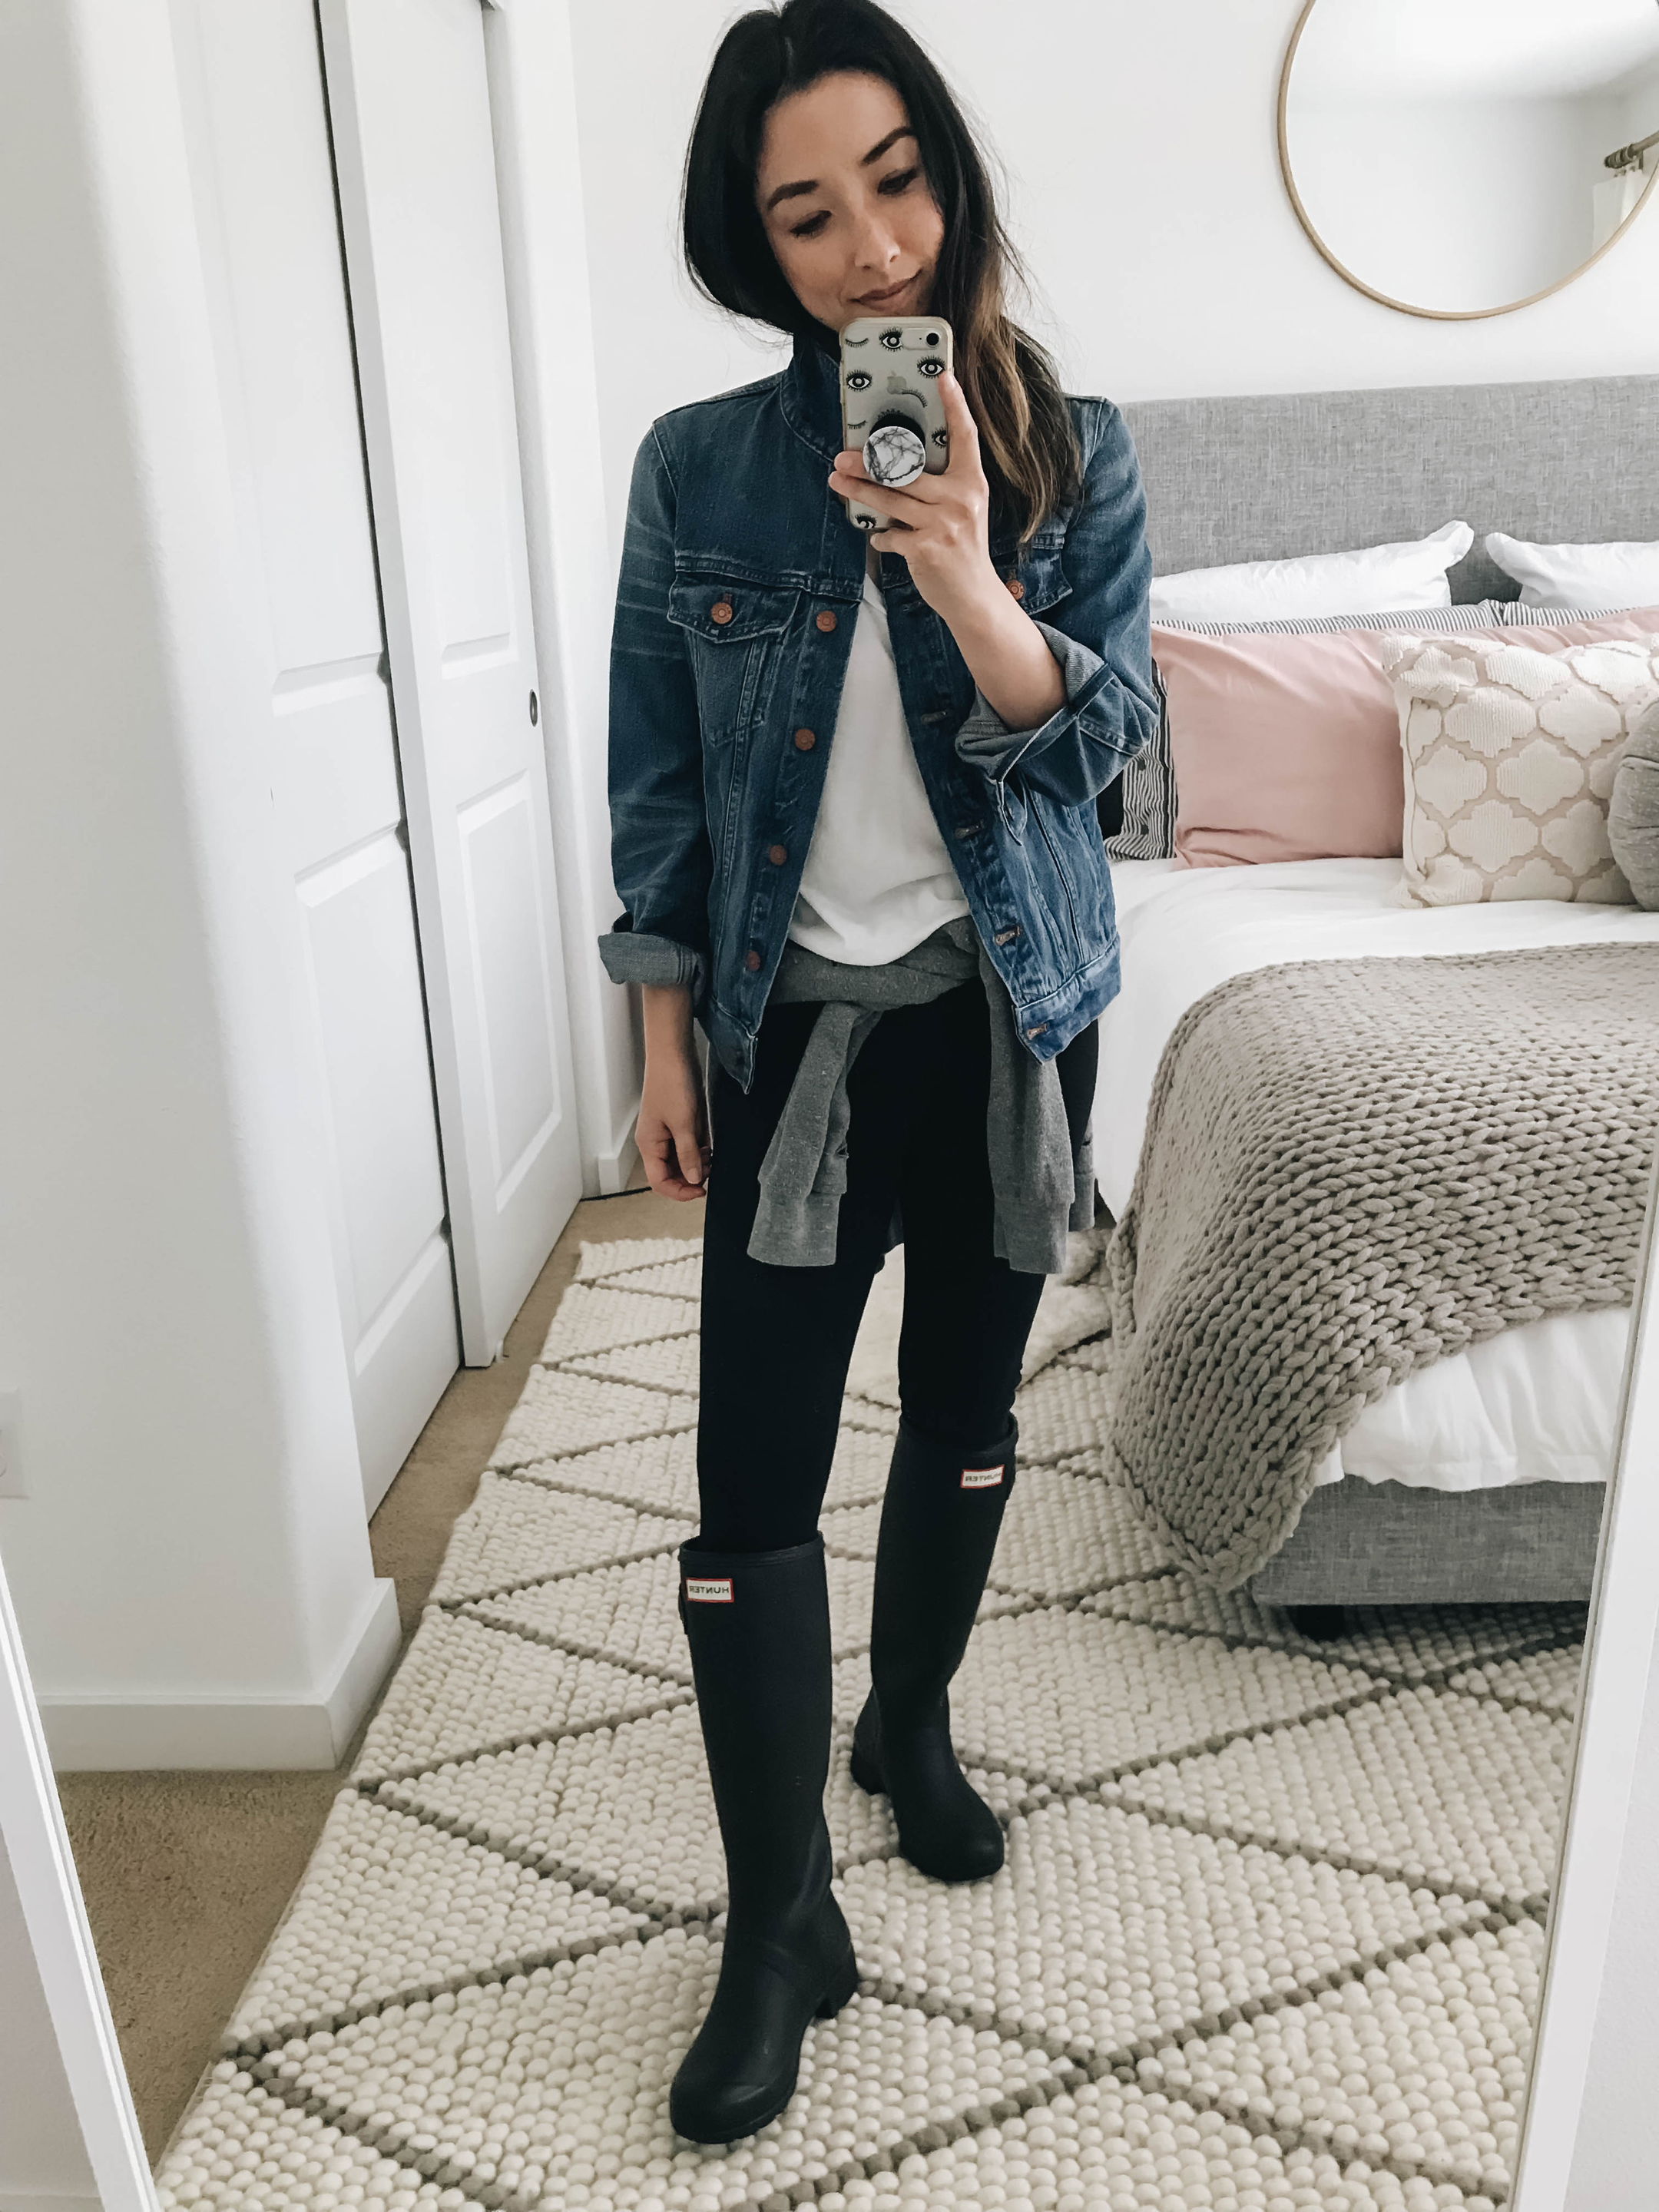 Rain boots and denim jacket